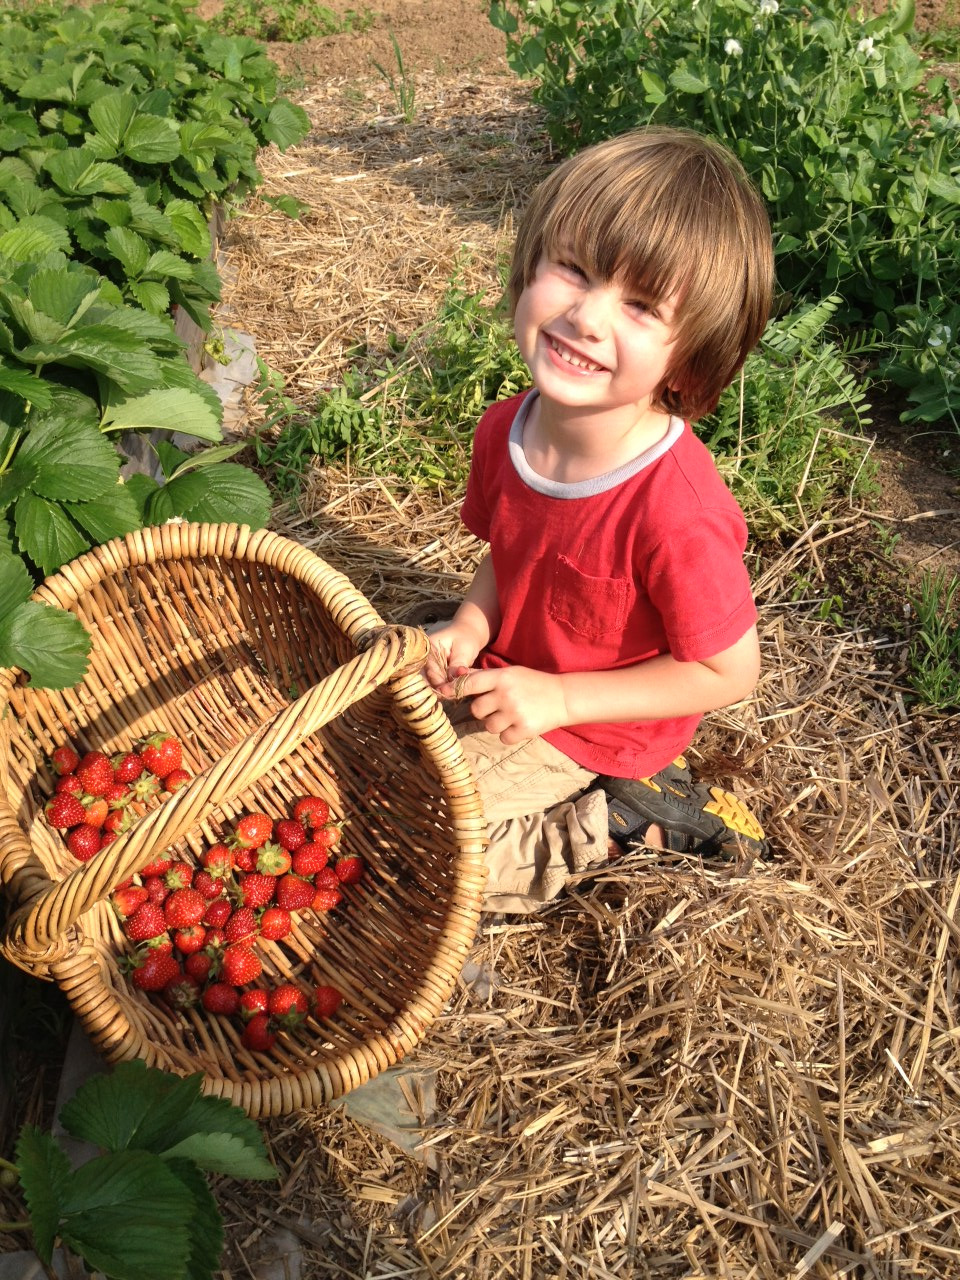 Noah's been growing strawberries for my mom. I showed her this picture today. It made her smile